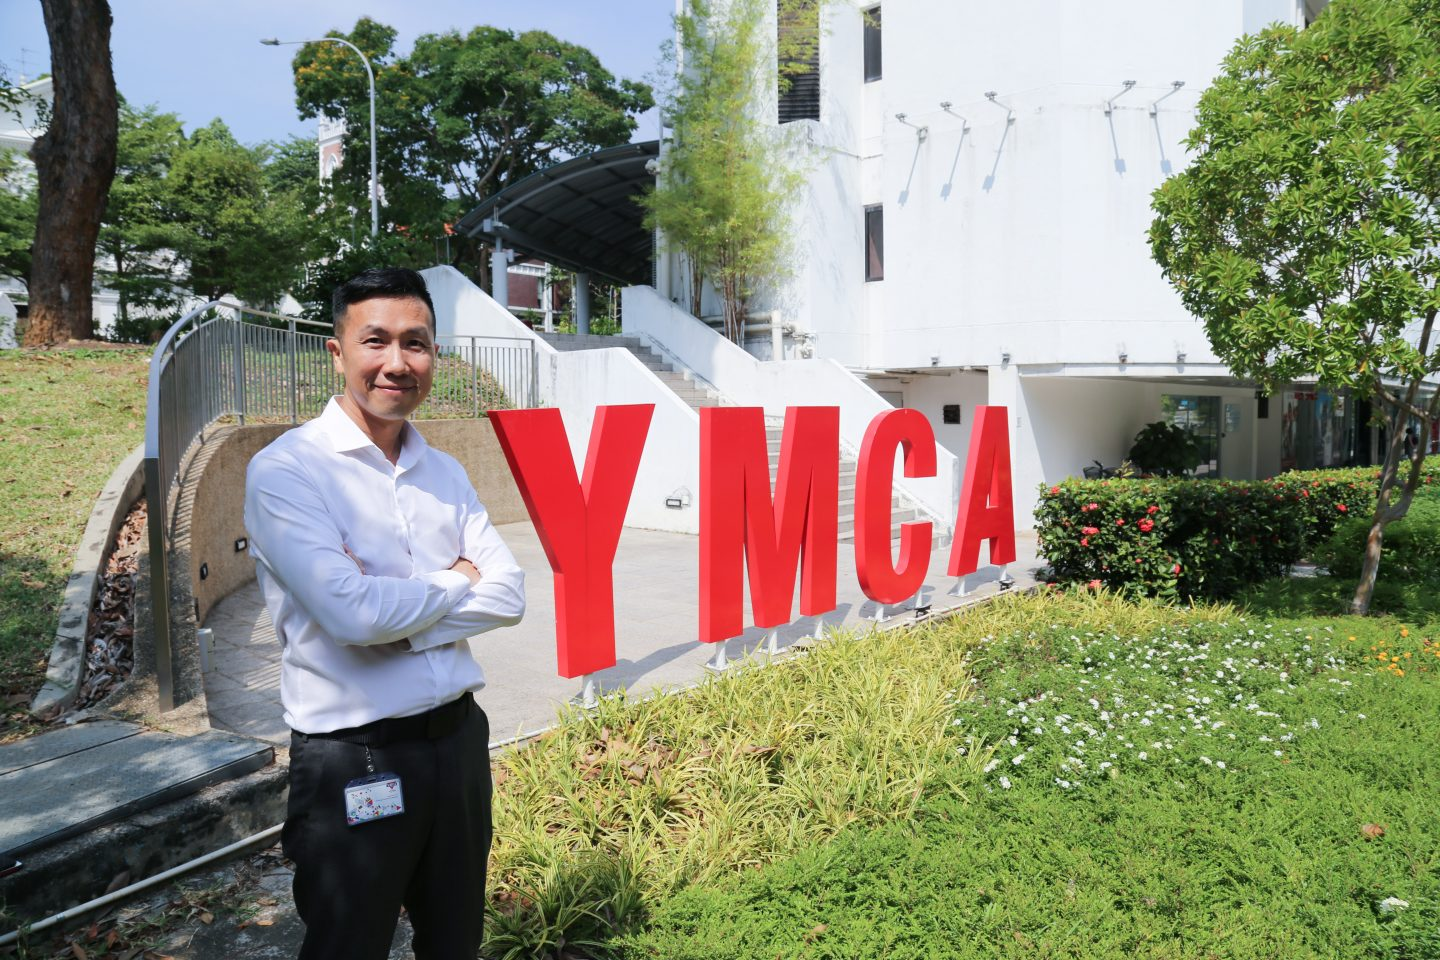 Since Steve began his role in YMCA in 2018, he is still learning how to represent the character of Christ in all he does as a CEO. Photo courtesy of YMCA.